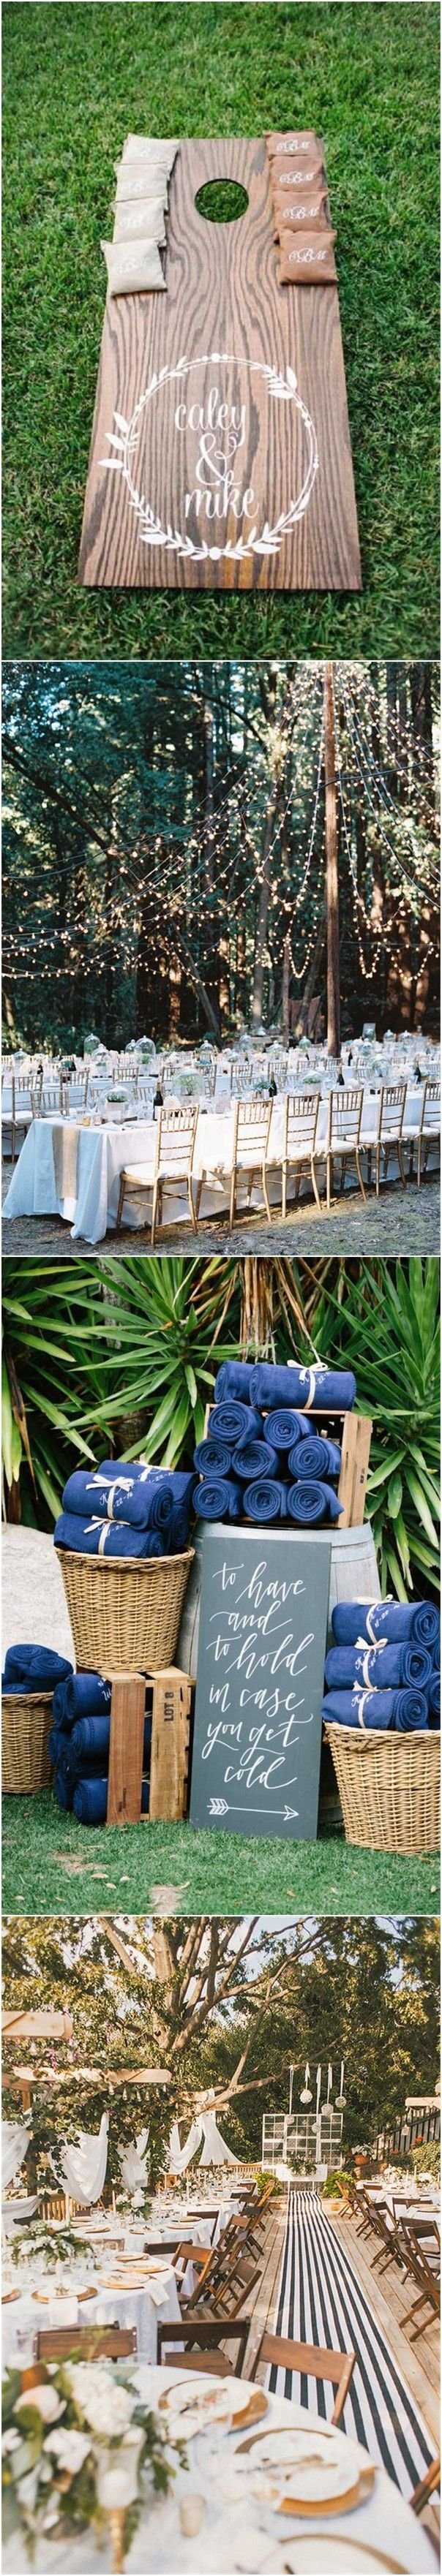 Best 25 backyard wedding decorations ideas on pinterest for Backyard wedding decoration ideas on a budget